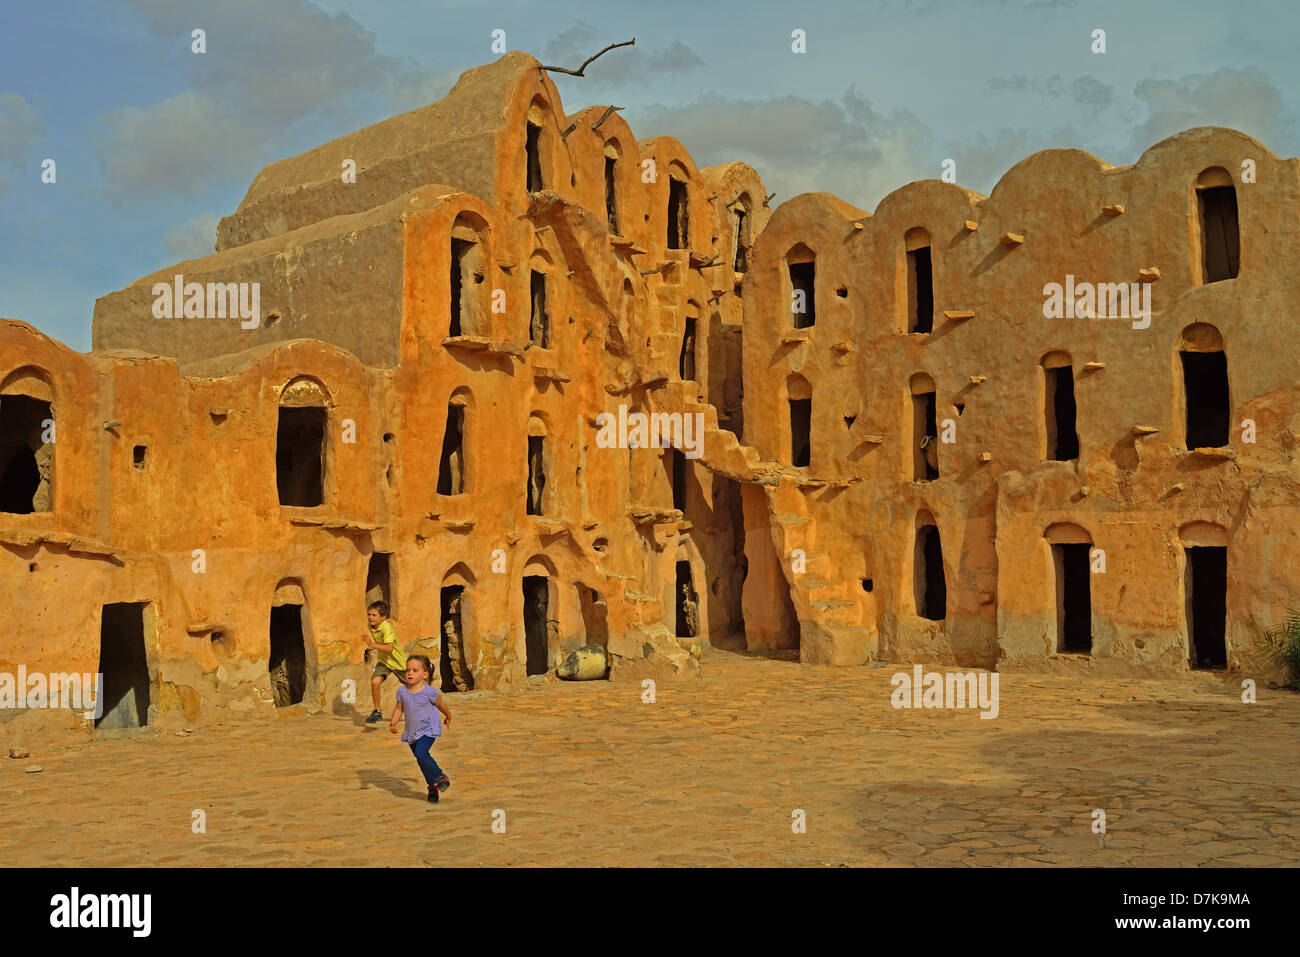 Ksar Ouled Soltane, Tataouine Province, Tunesia. Stock Photo